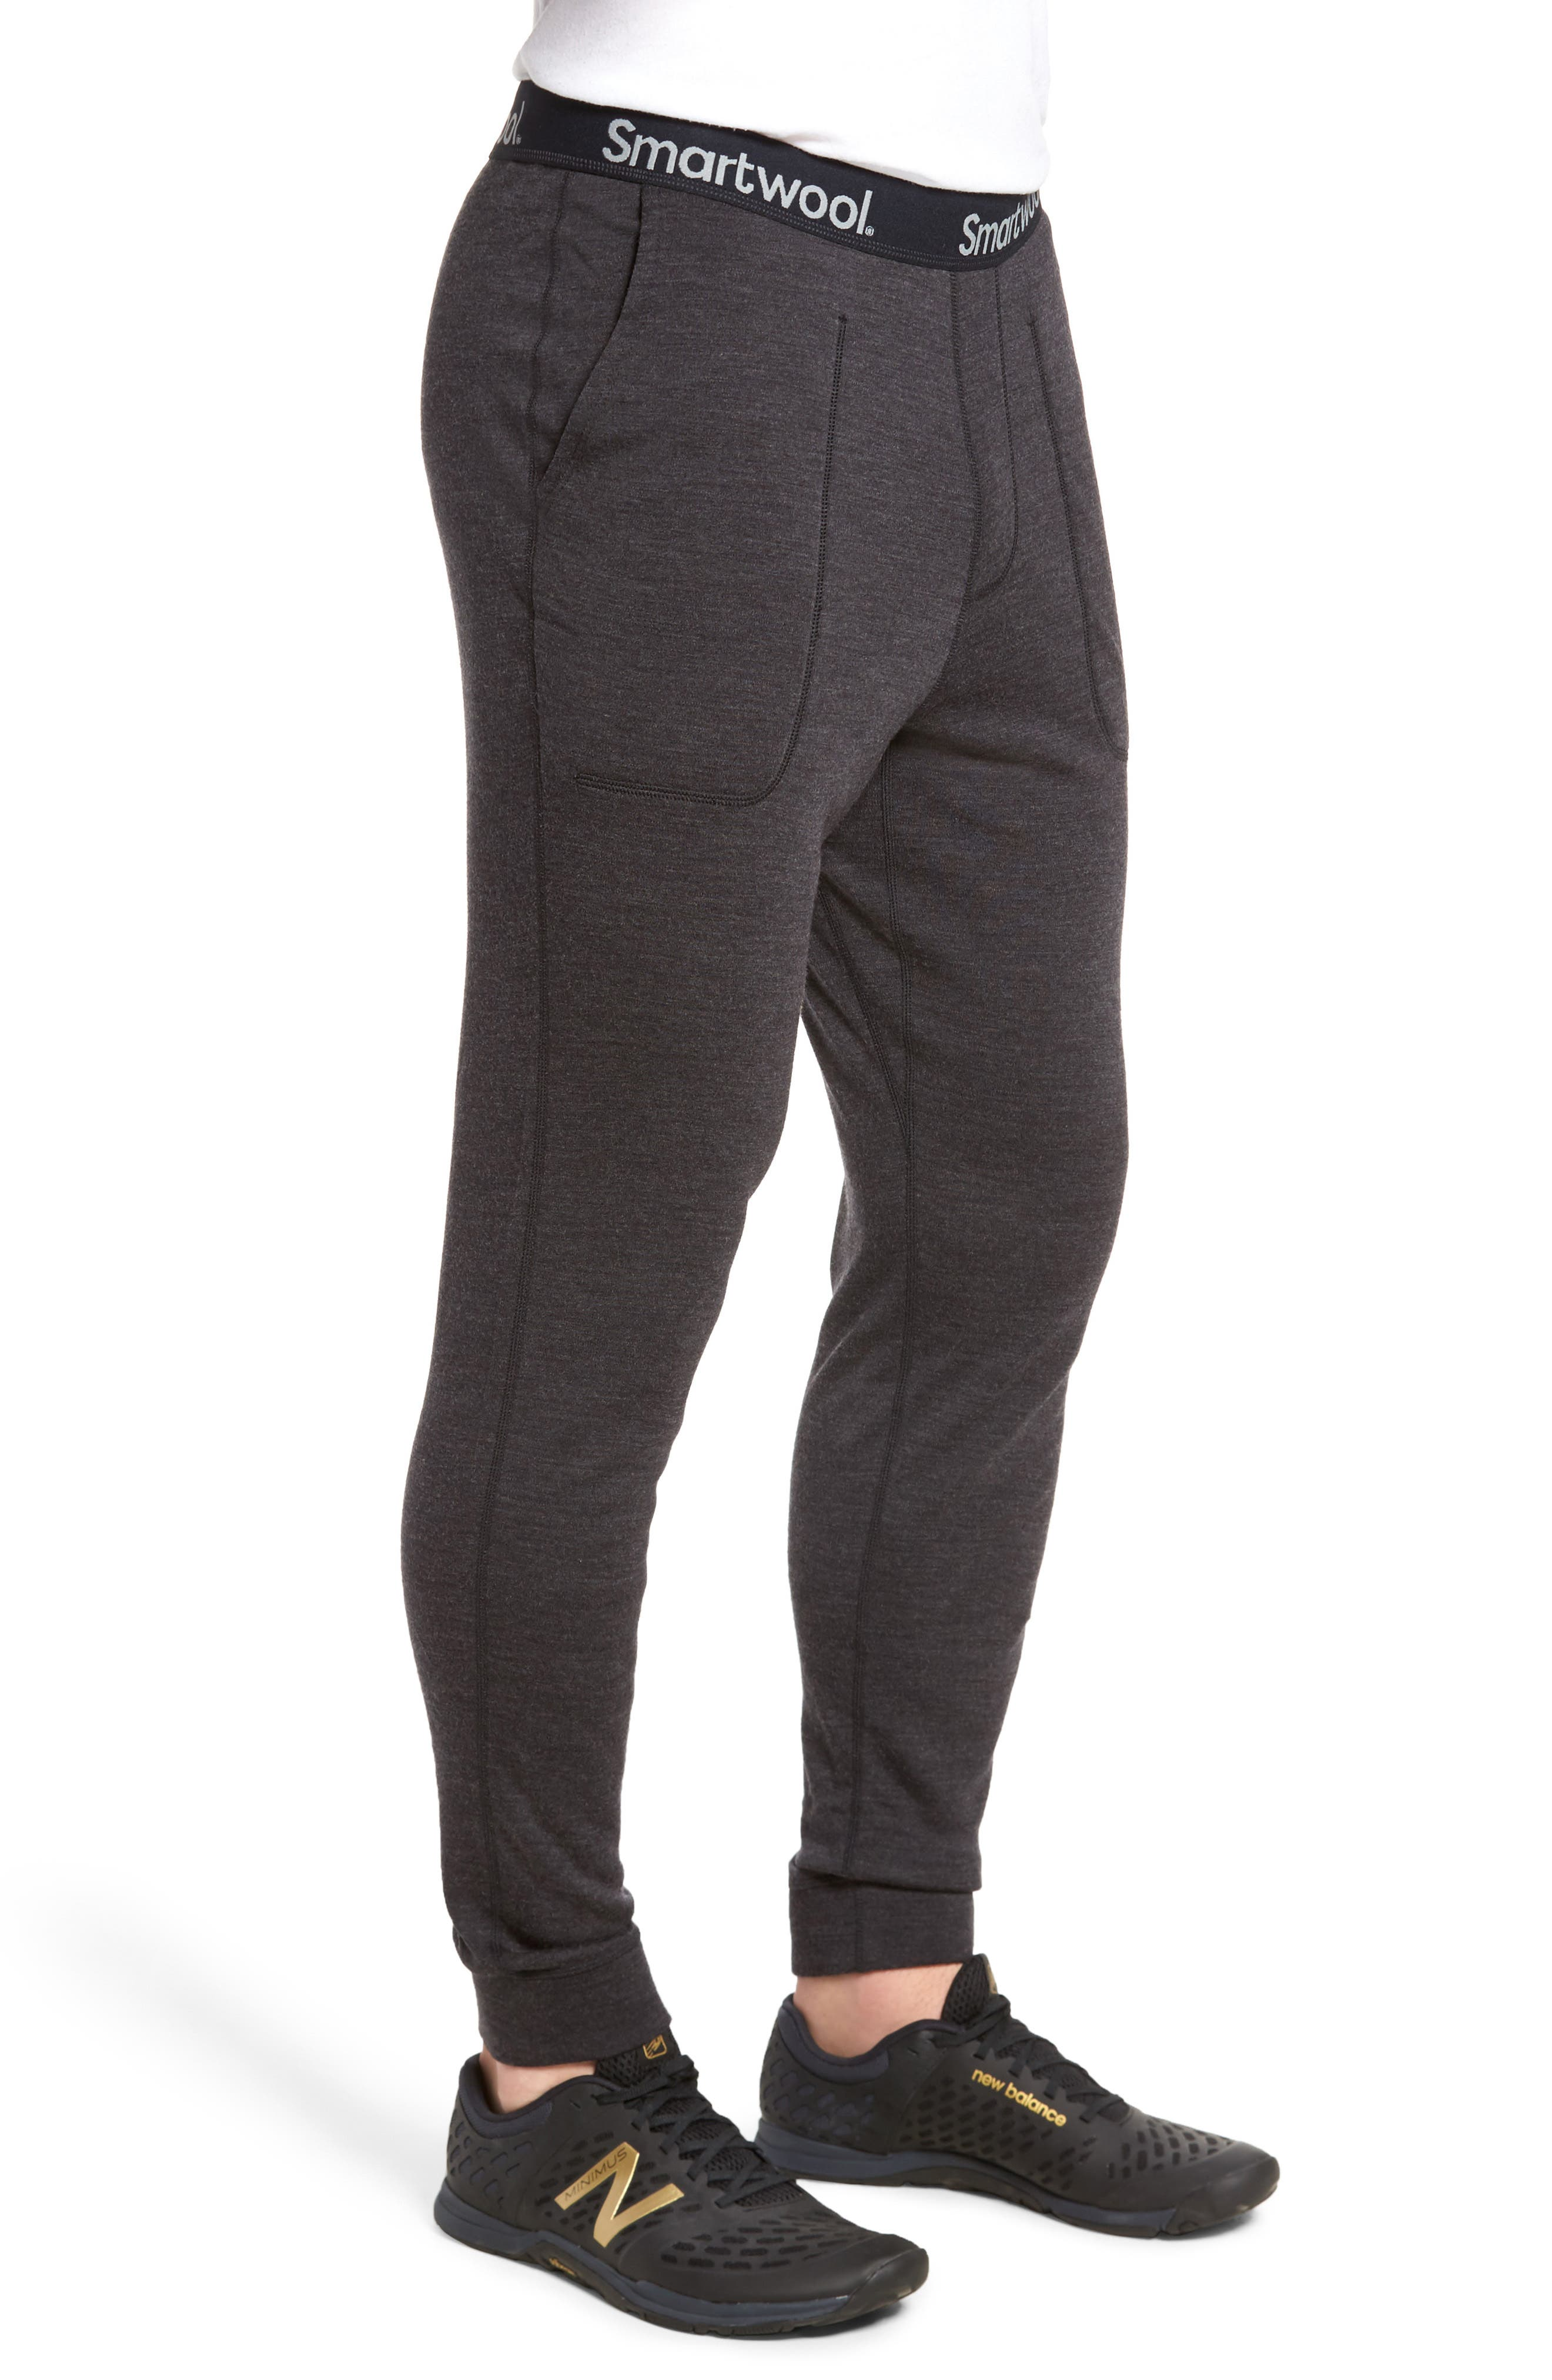 250 Merino Wool Jogger Pants,                             Alternate thumbnail 3, color,                             Charcoal